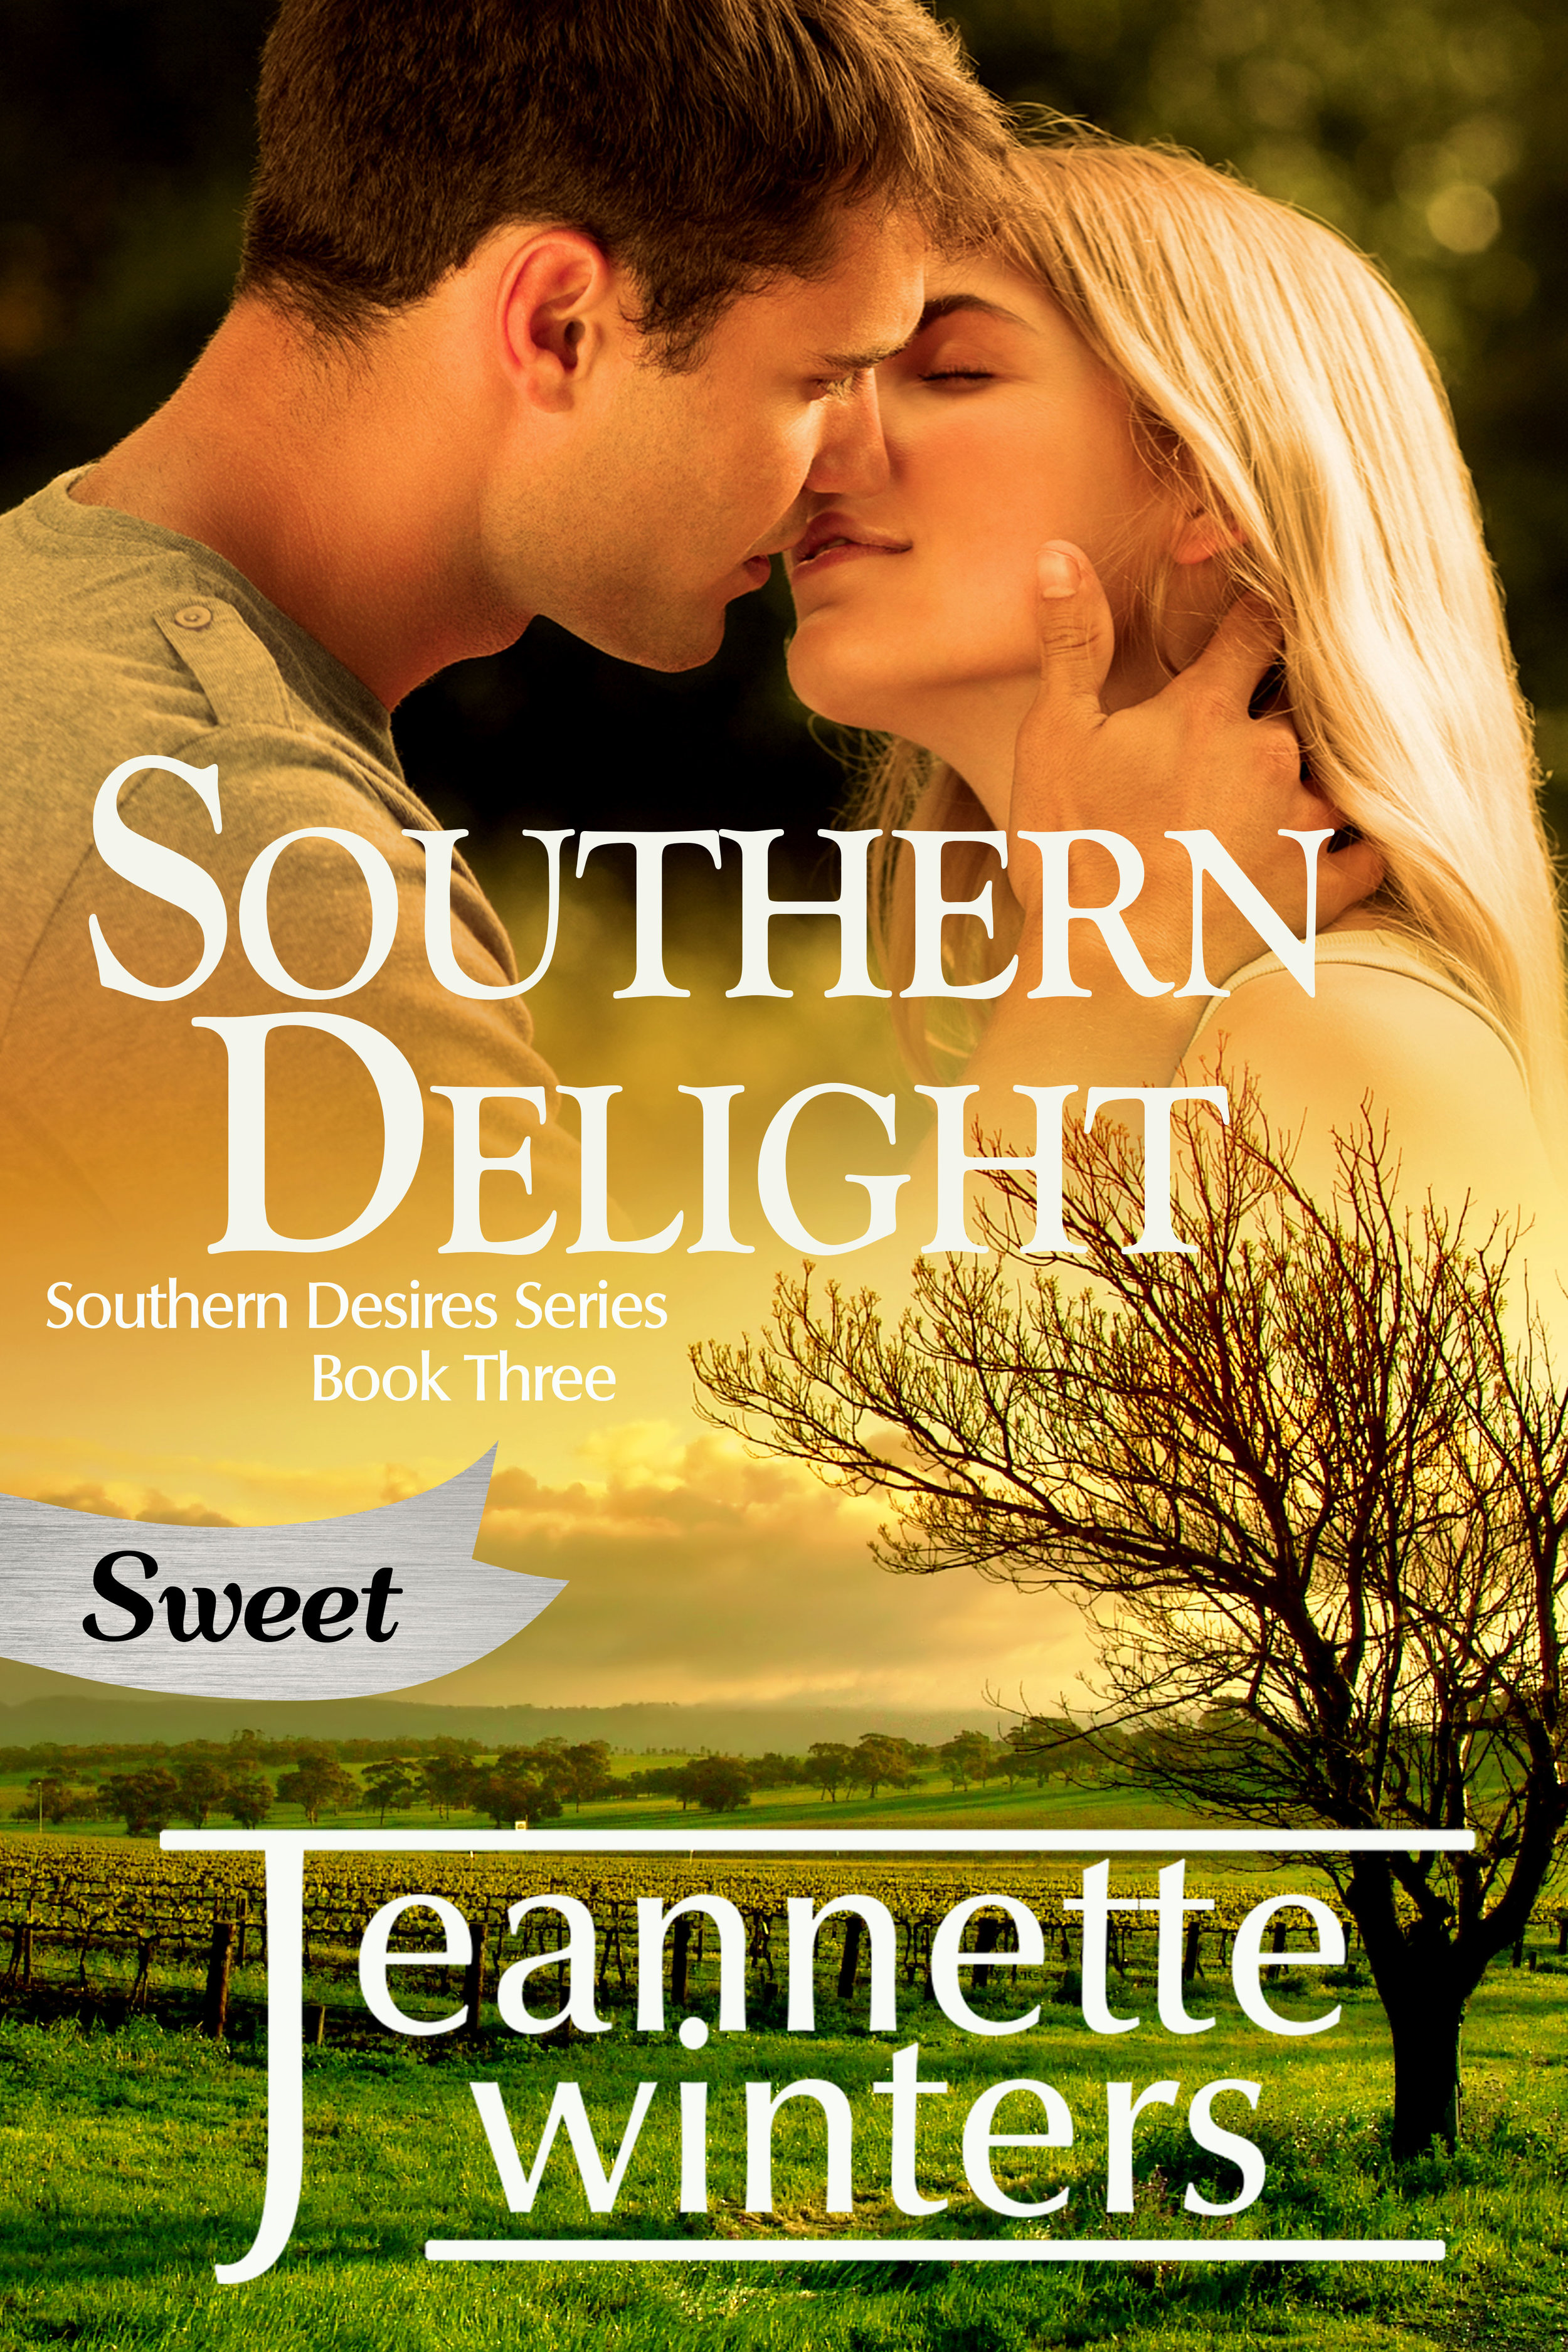 Enjoy this clean and wholesome version of Southern Delight. Same story without the spice. The Sweet version still contains adult situations and relationships. If you prefer the hotter version be sure to download the original.  Don Farrell believes in working hard and playing even harder. The only thing he took seriously was business. Finding out there was a target on his back only made him more determined to succeed.  Bailey Tasca had been confident and outgoing. Her tomorrows had been filled with dreams of someday making it big as a comedian, but her laughter stopped the day the doctor told her the results: cancer. Now she struggles to redefine herself.  When Don and Bailey meet up again at a friend's wedding, the one thing neither wanted was to find the chemistry they'd shared in the past now even more explosive.  Don realizes it doesn't matter what he achieves if Bailey is not by his side to share it. Can he reach Bailey behind her high walls of insecurities and doubt? Bailey must let go of her newly acquired inhibitions and open herself up, both emotionally and physically, if she ever wants her happily ever after. Can their love heal even the deepest wounds?